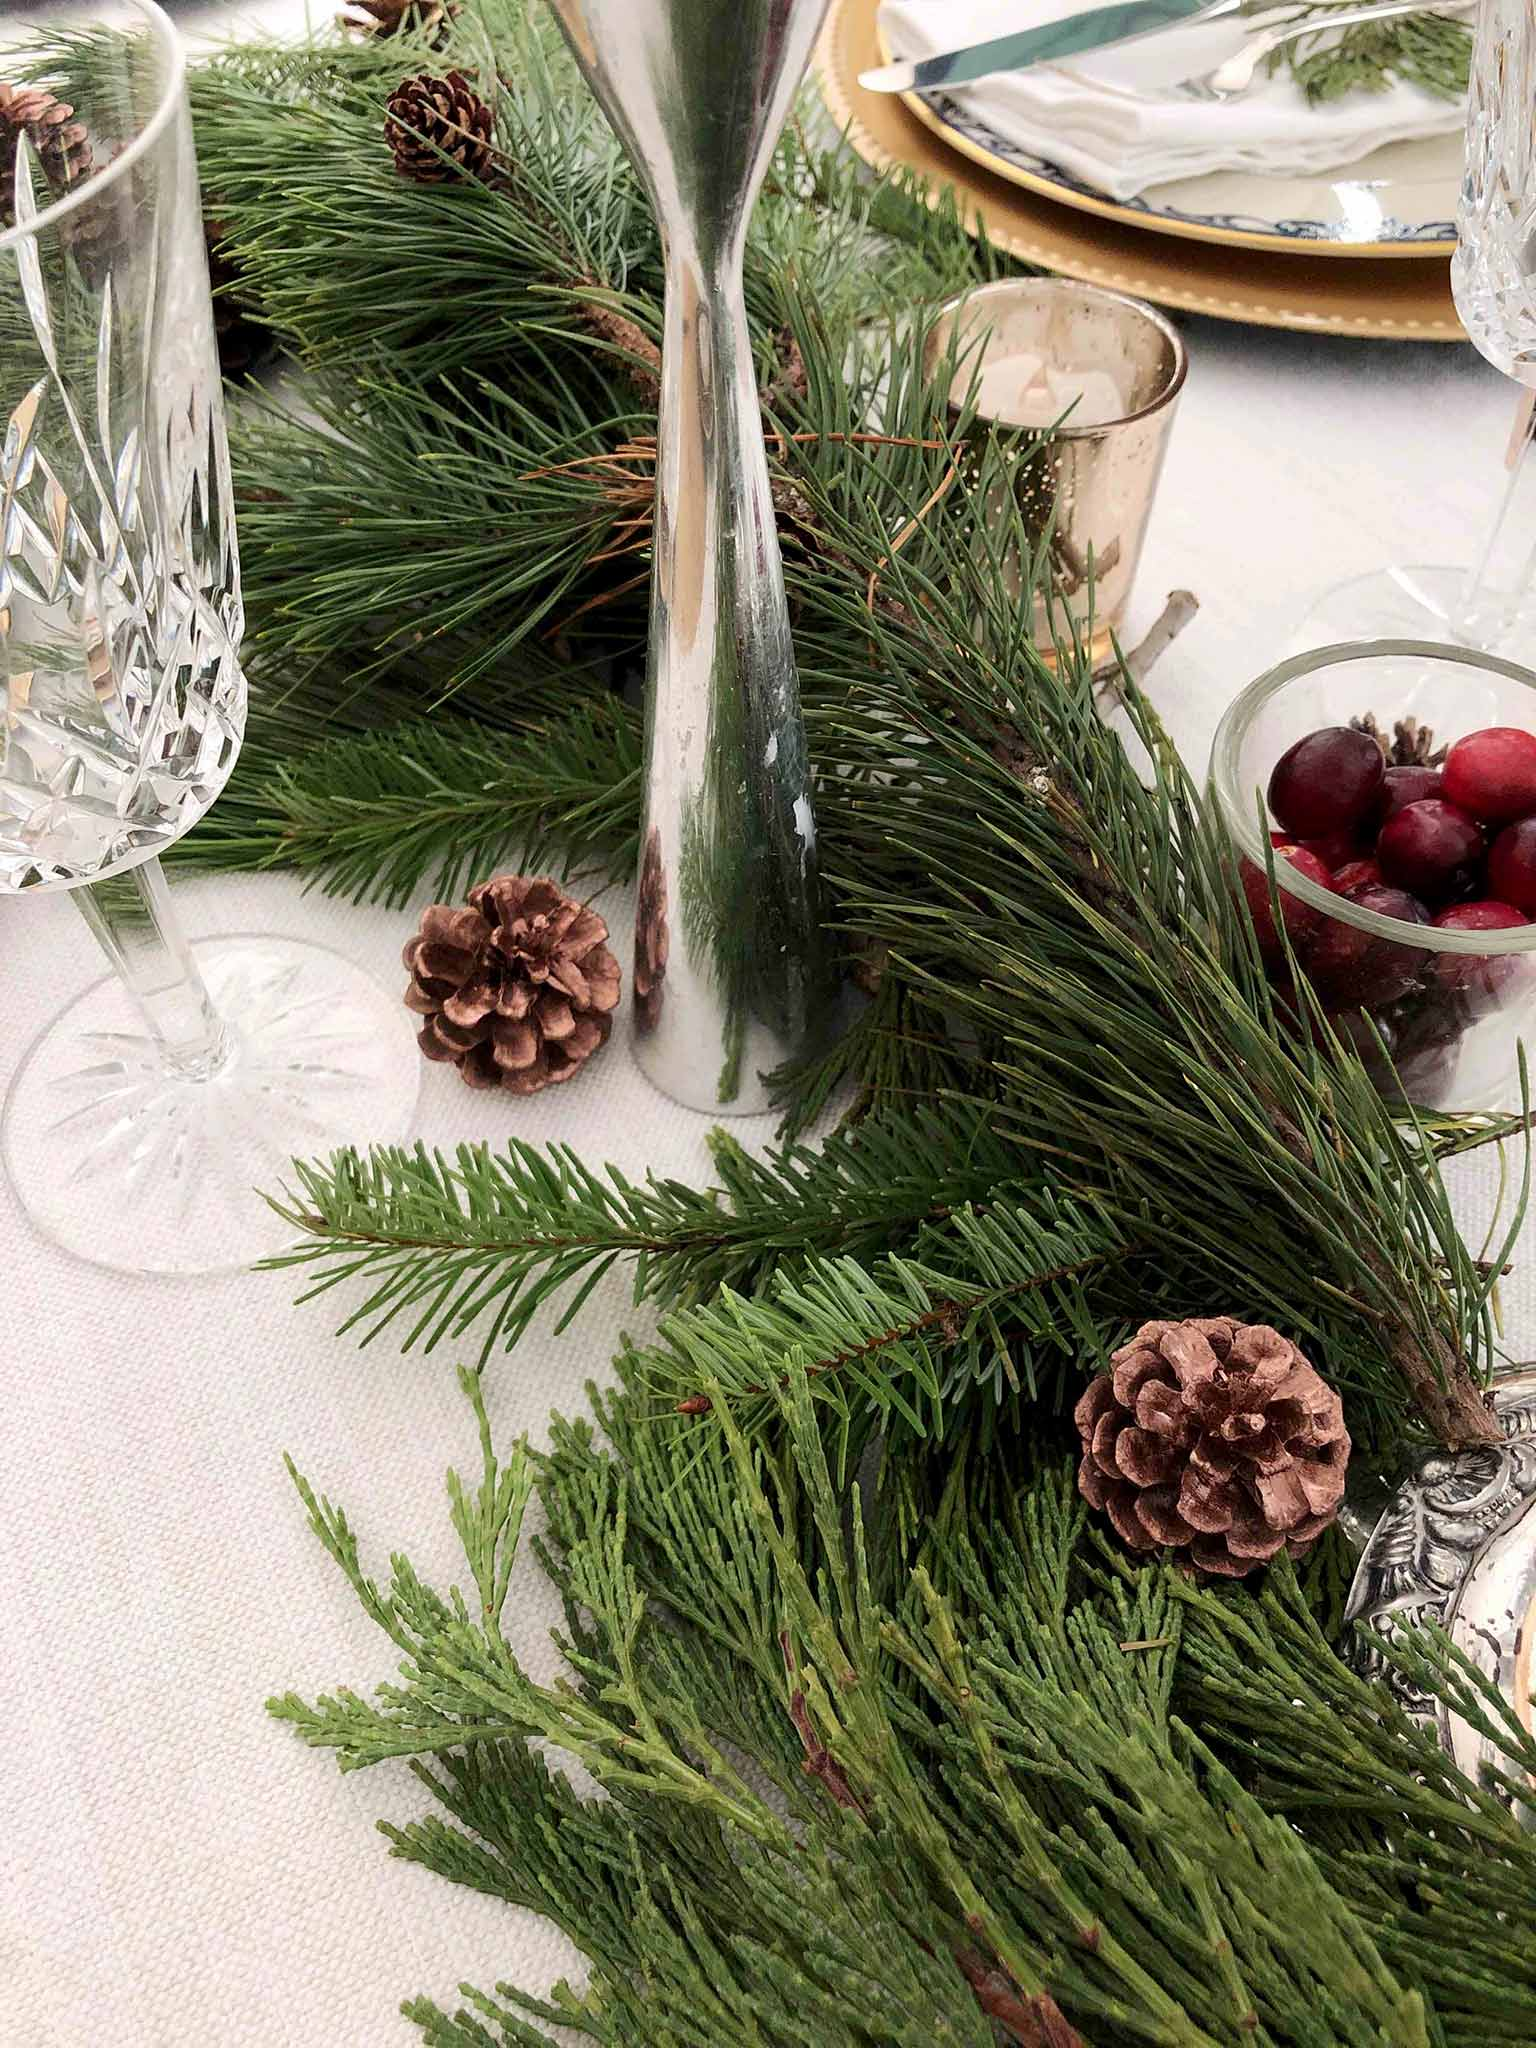 Greenery | How to Create a Beautiful Tablescape on a Budget | That Homebird Life Blog #christmasdecor #tablescape